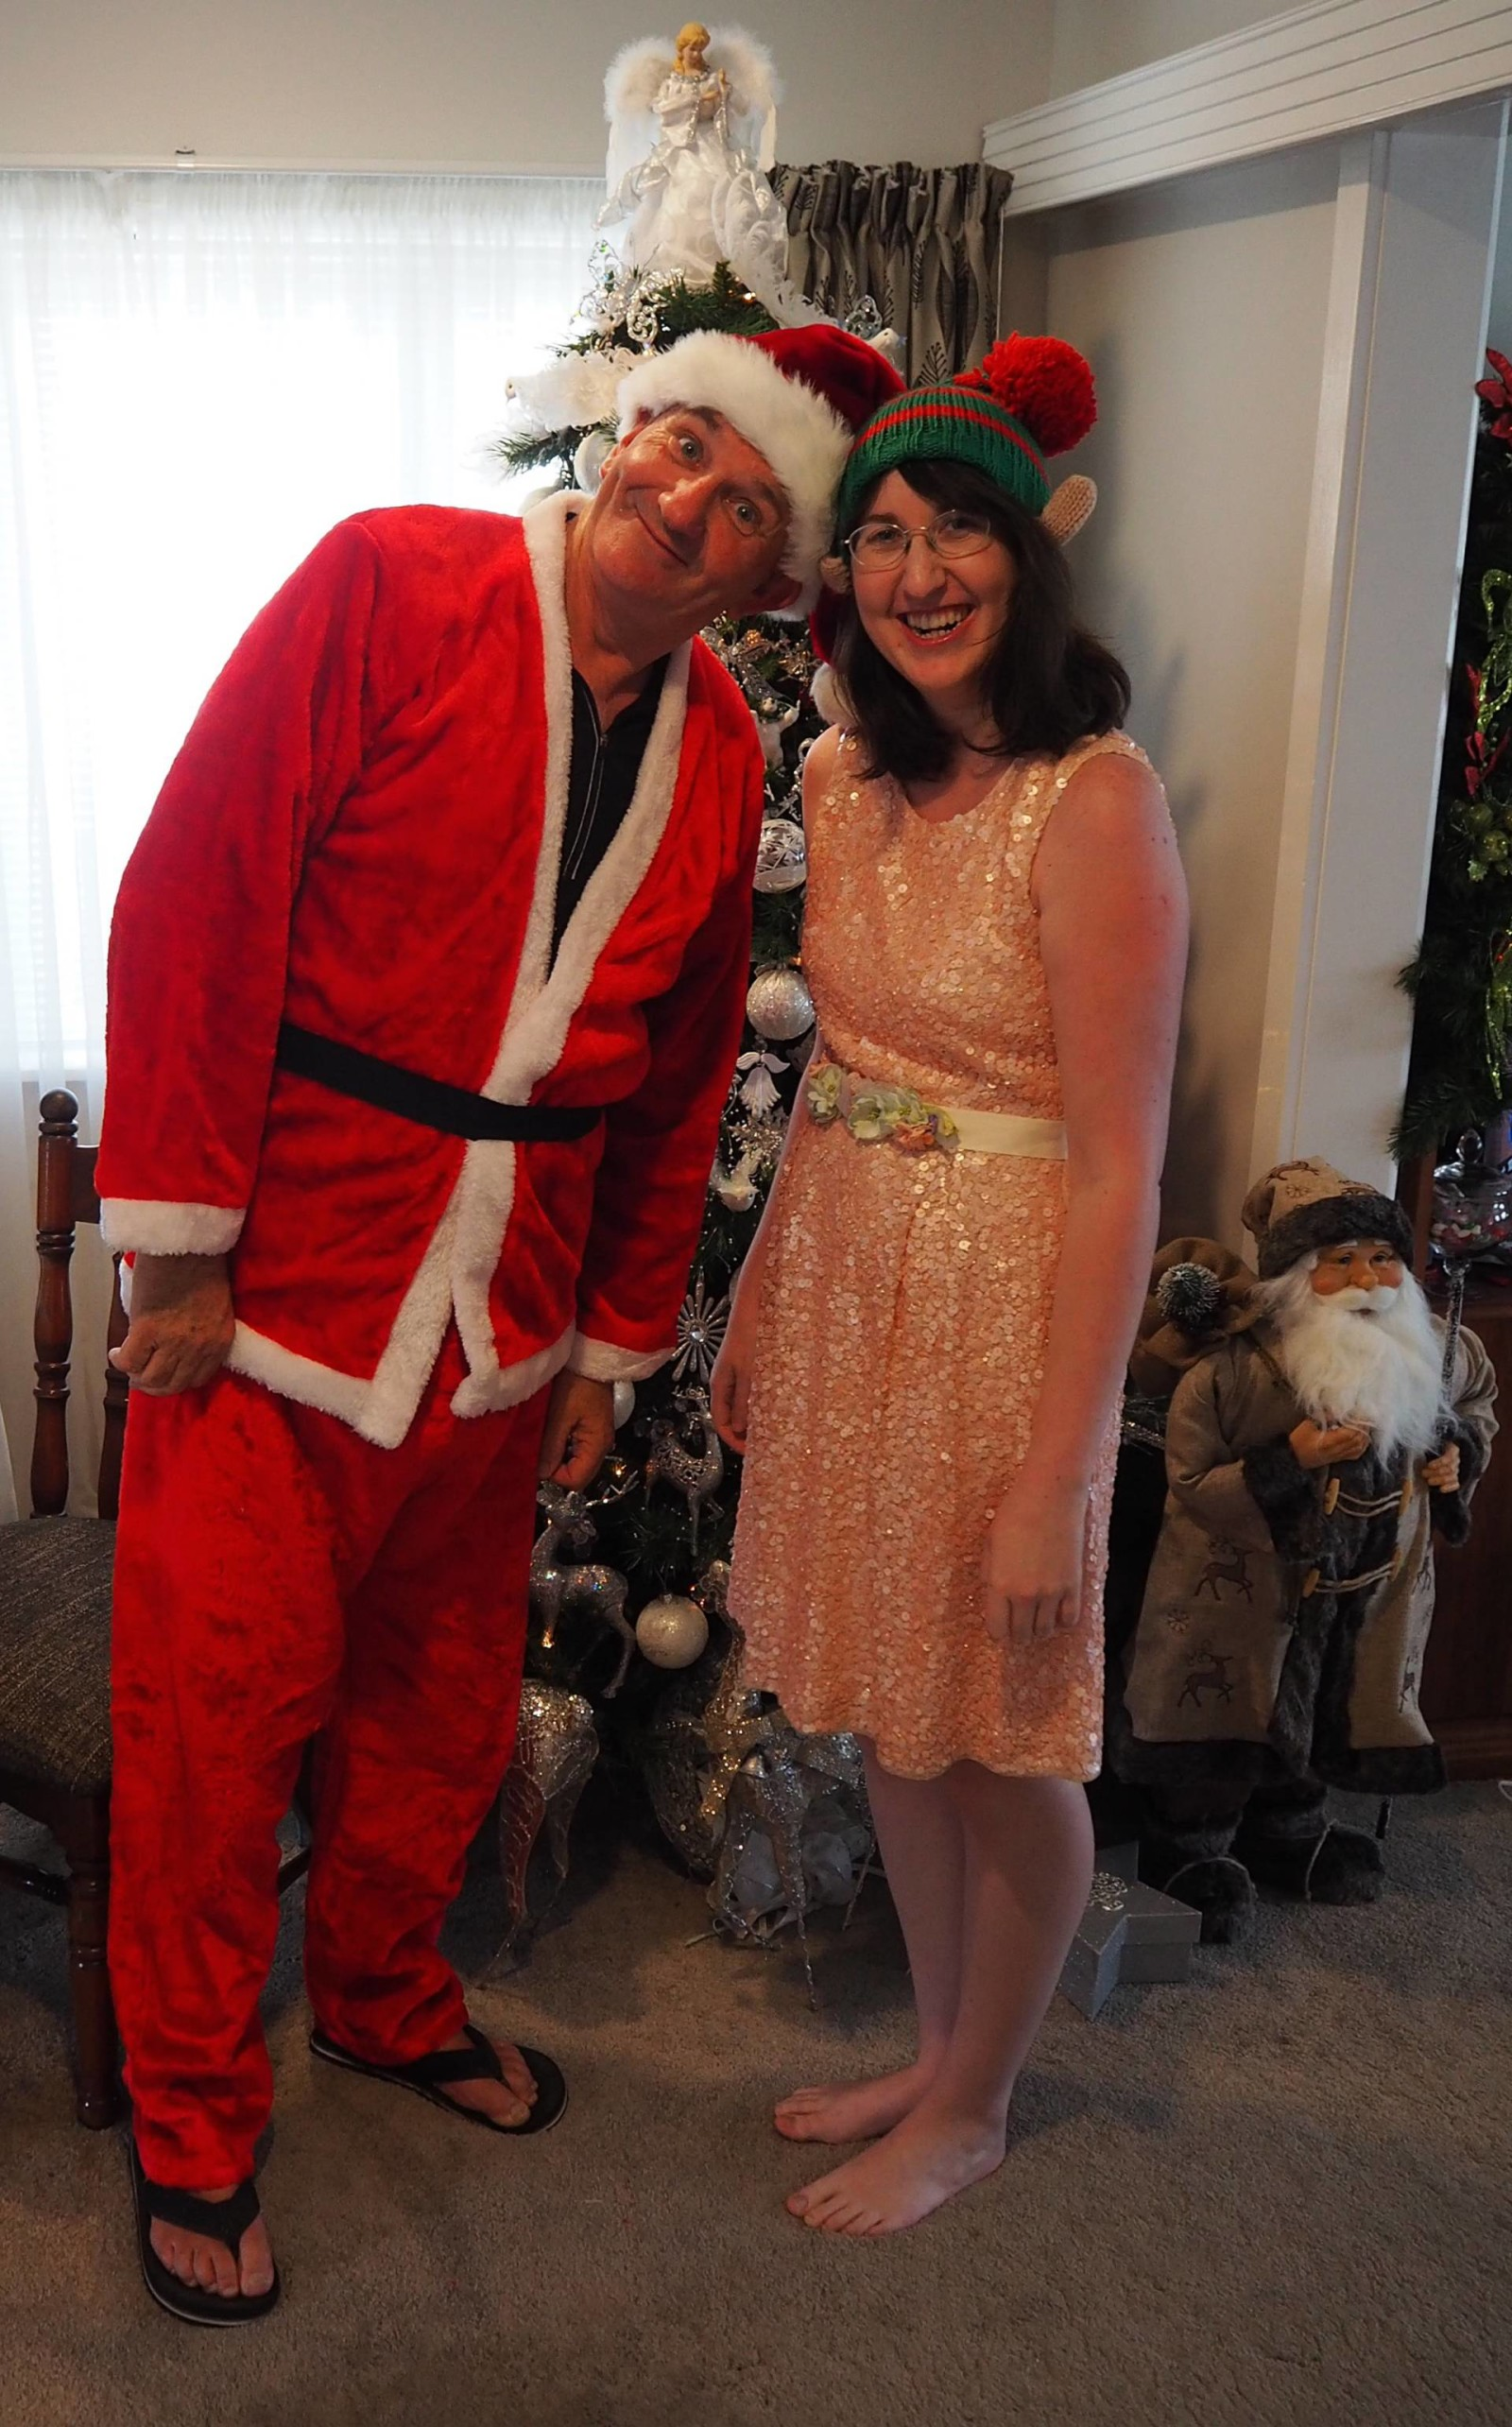 Christmas Day 2015 in New Zealand - Around the World in 80 Pairs of Shoes